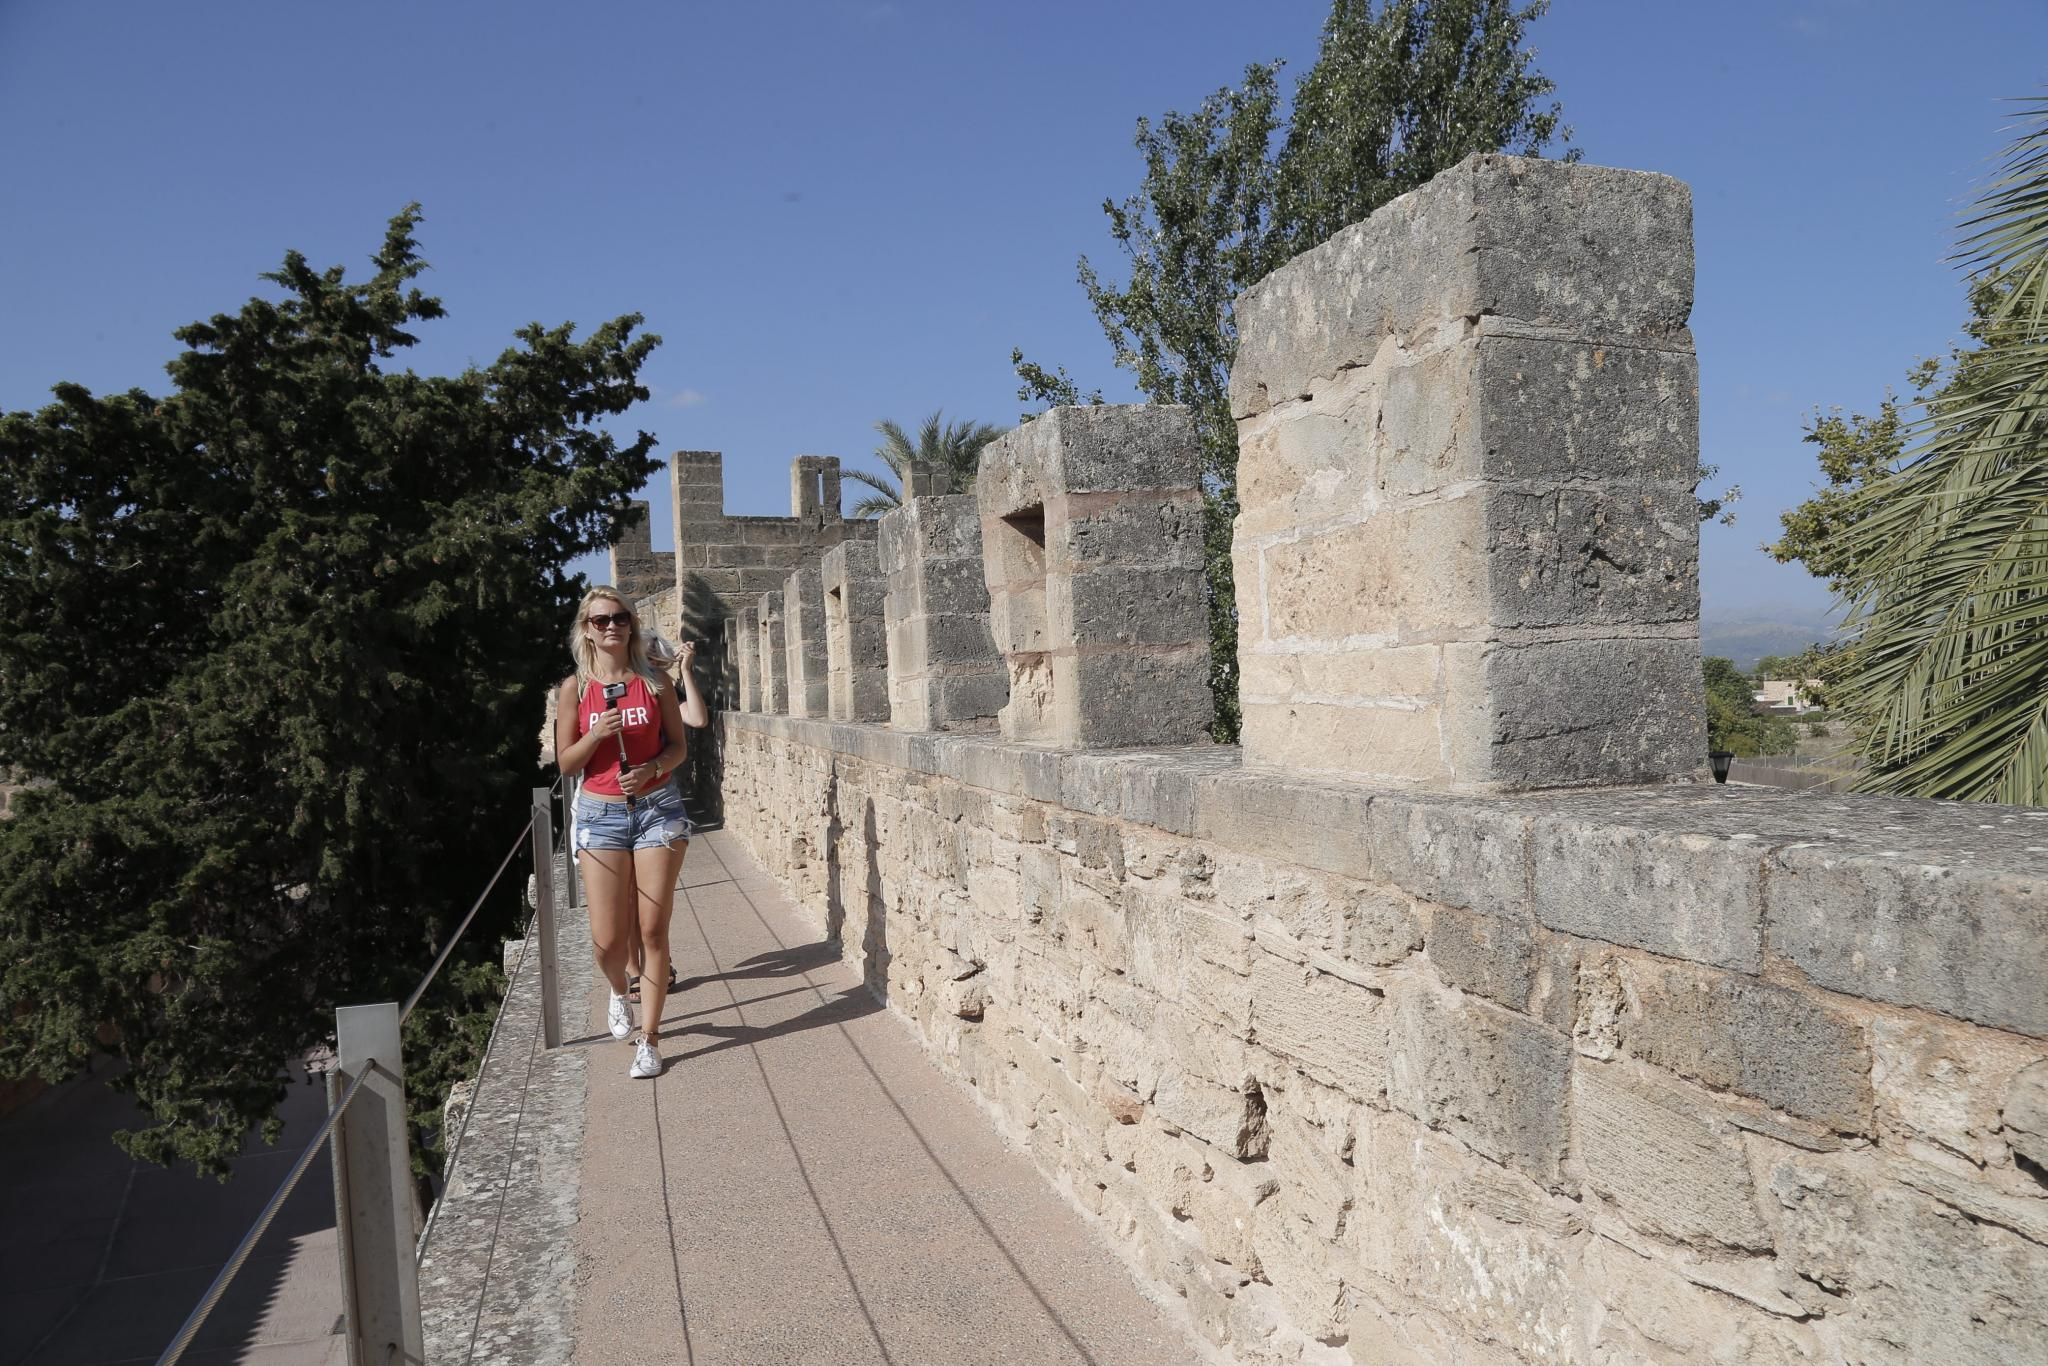 The old town walls, Alcudia